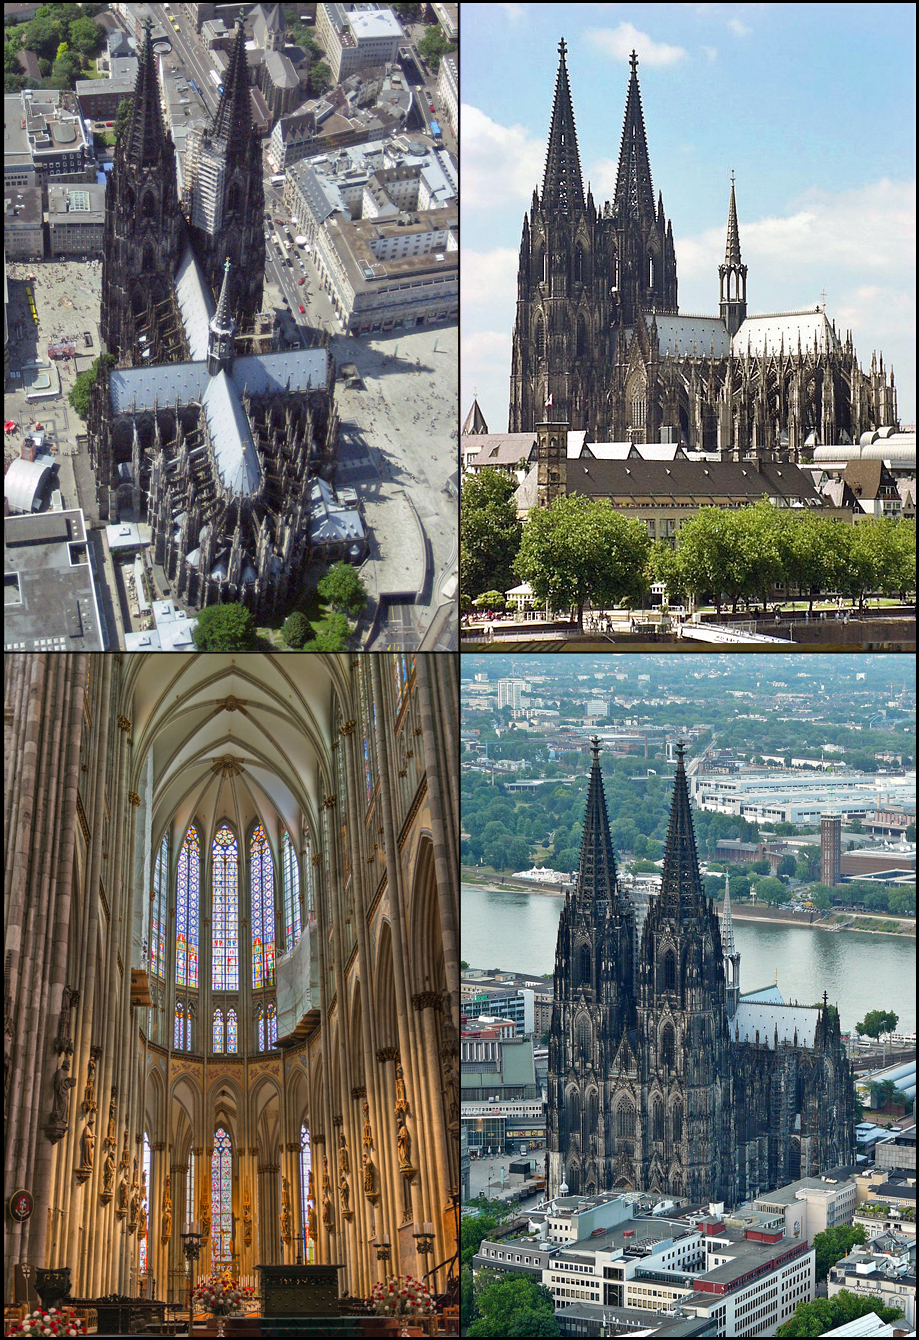 cologne cathedral wikipedia. Black Bedroom Furniture Sets. Home Design Ideas